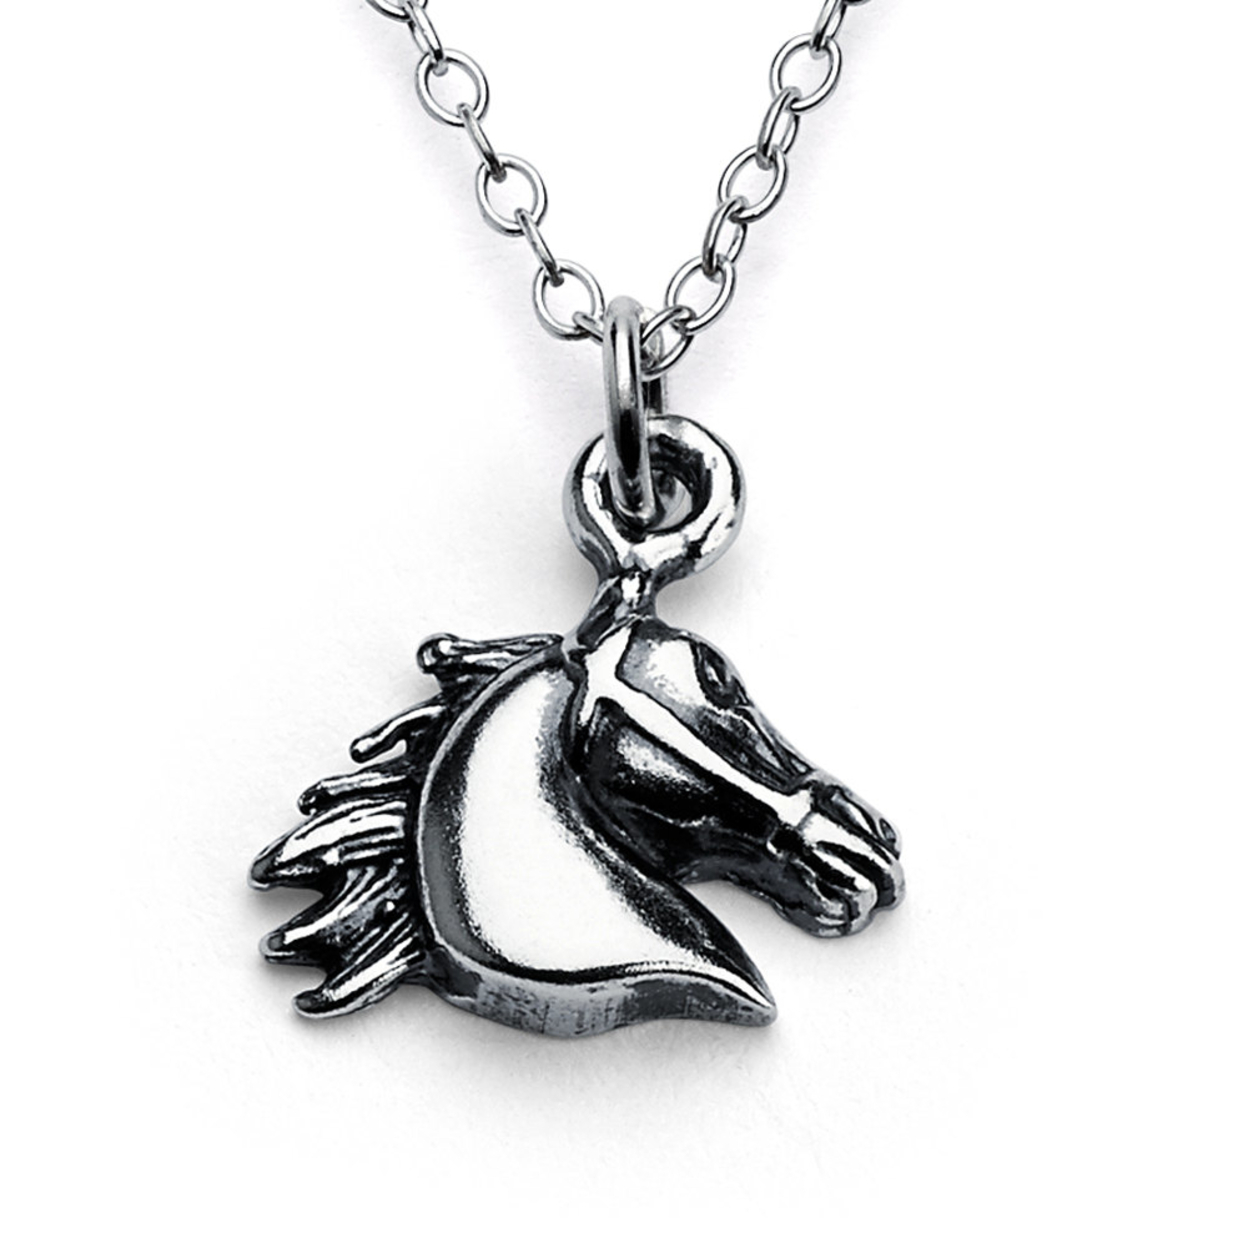 Horse Head Animal Symbol Of Victory & Freedom Charm Pendant Necklace #925 Sterling Silver #azaggi N0008s 12 Child